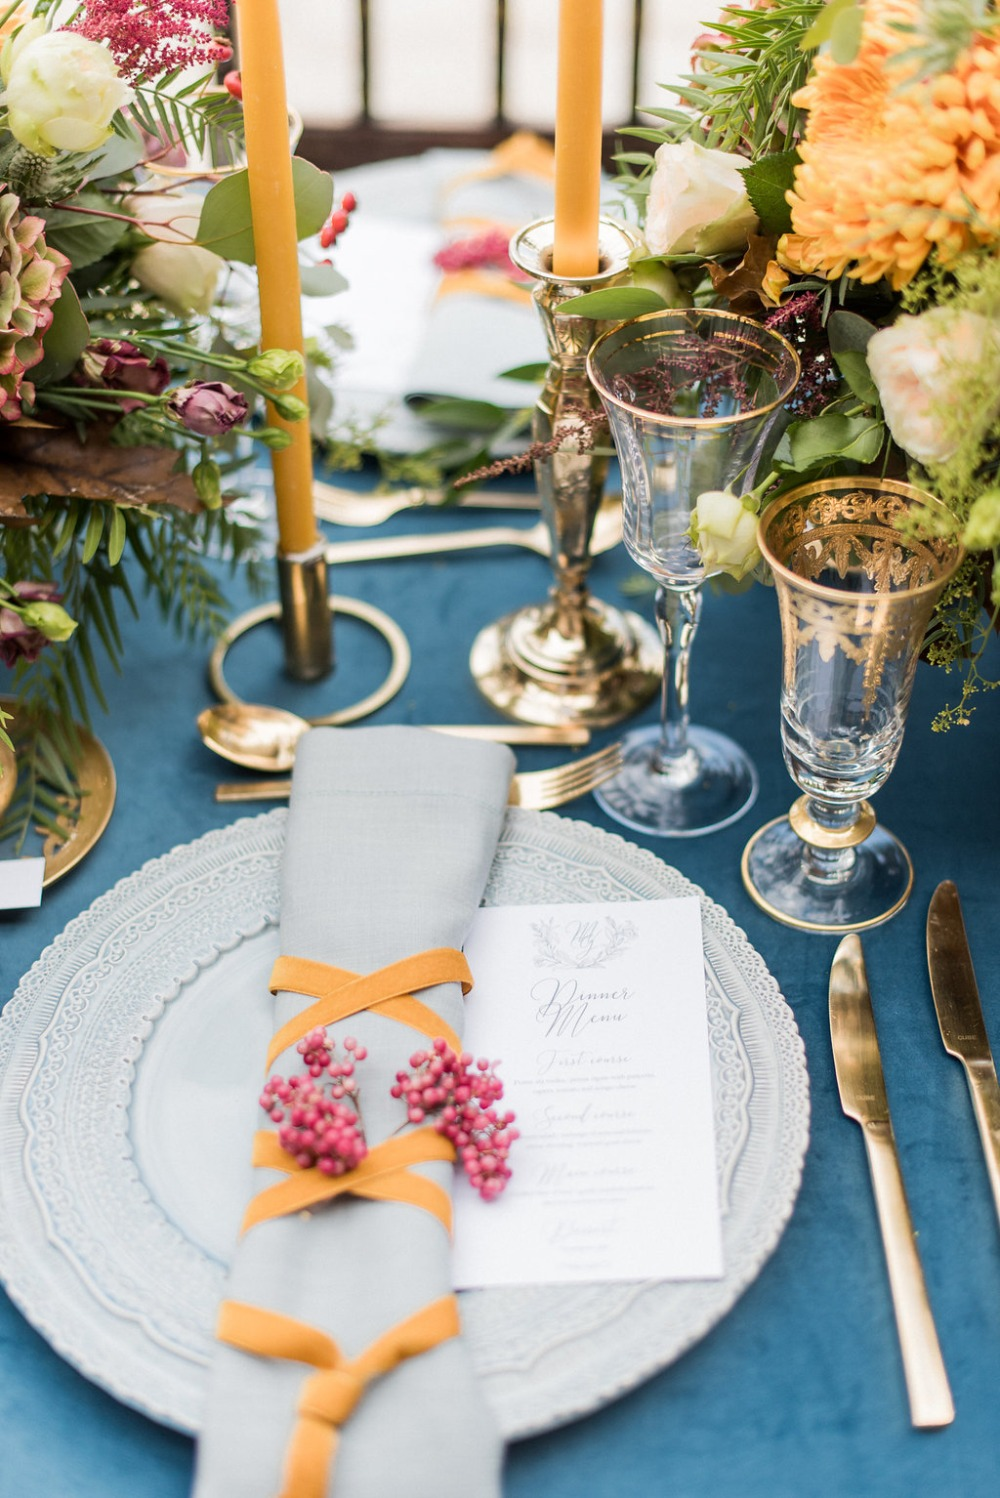 wedding table decor with a Medieval style